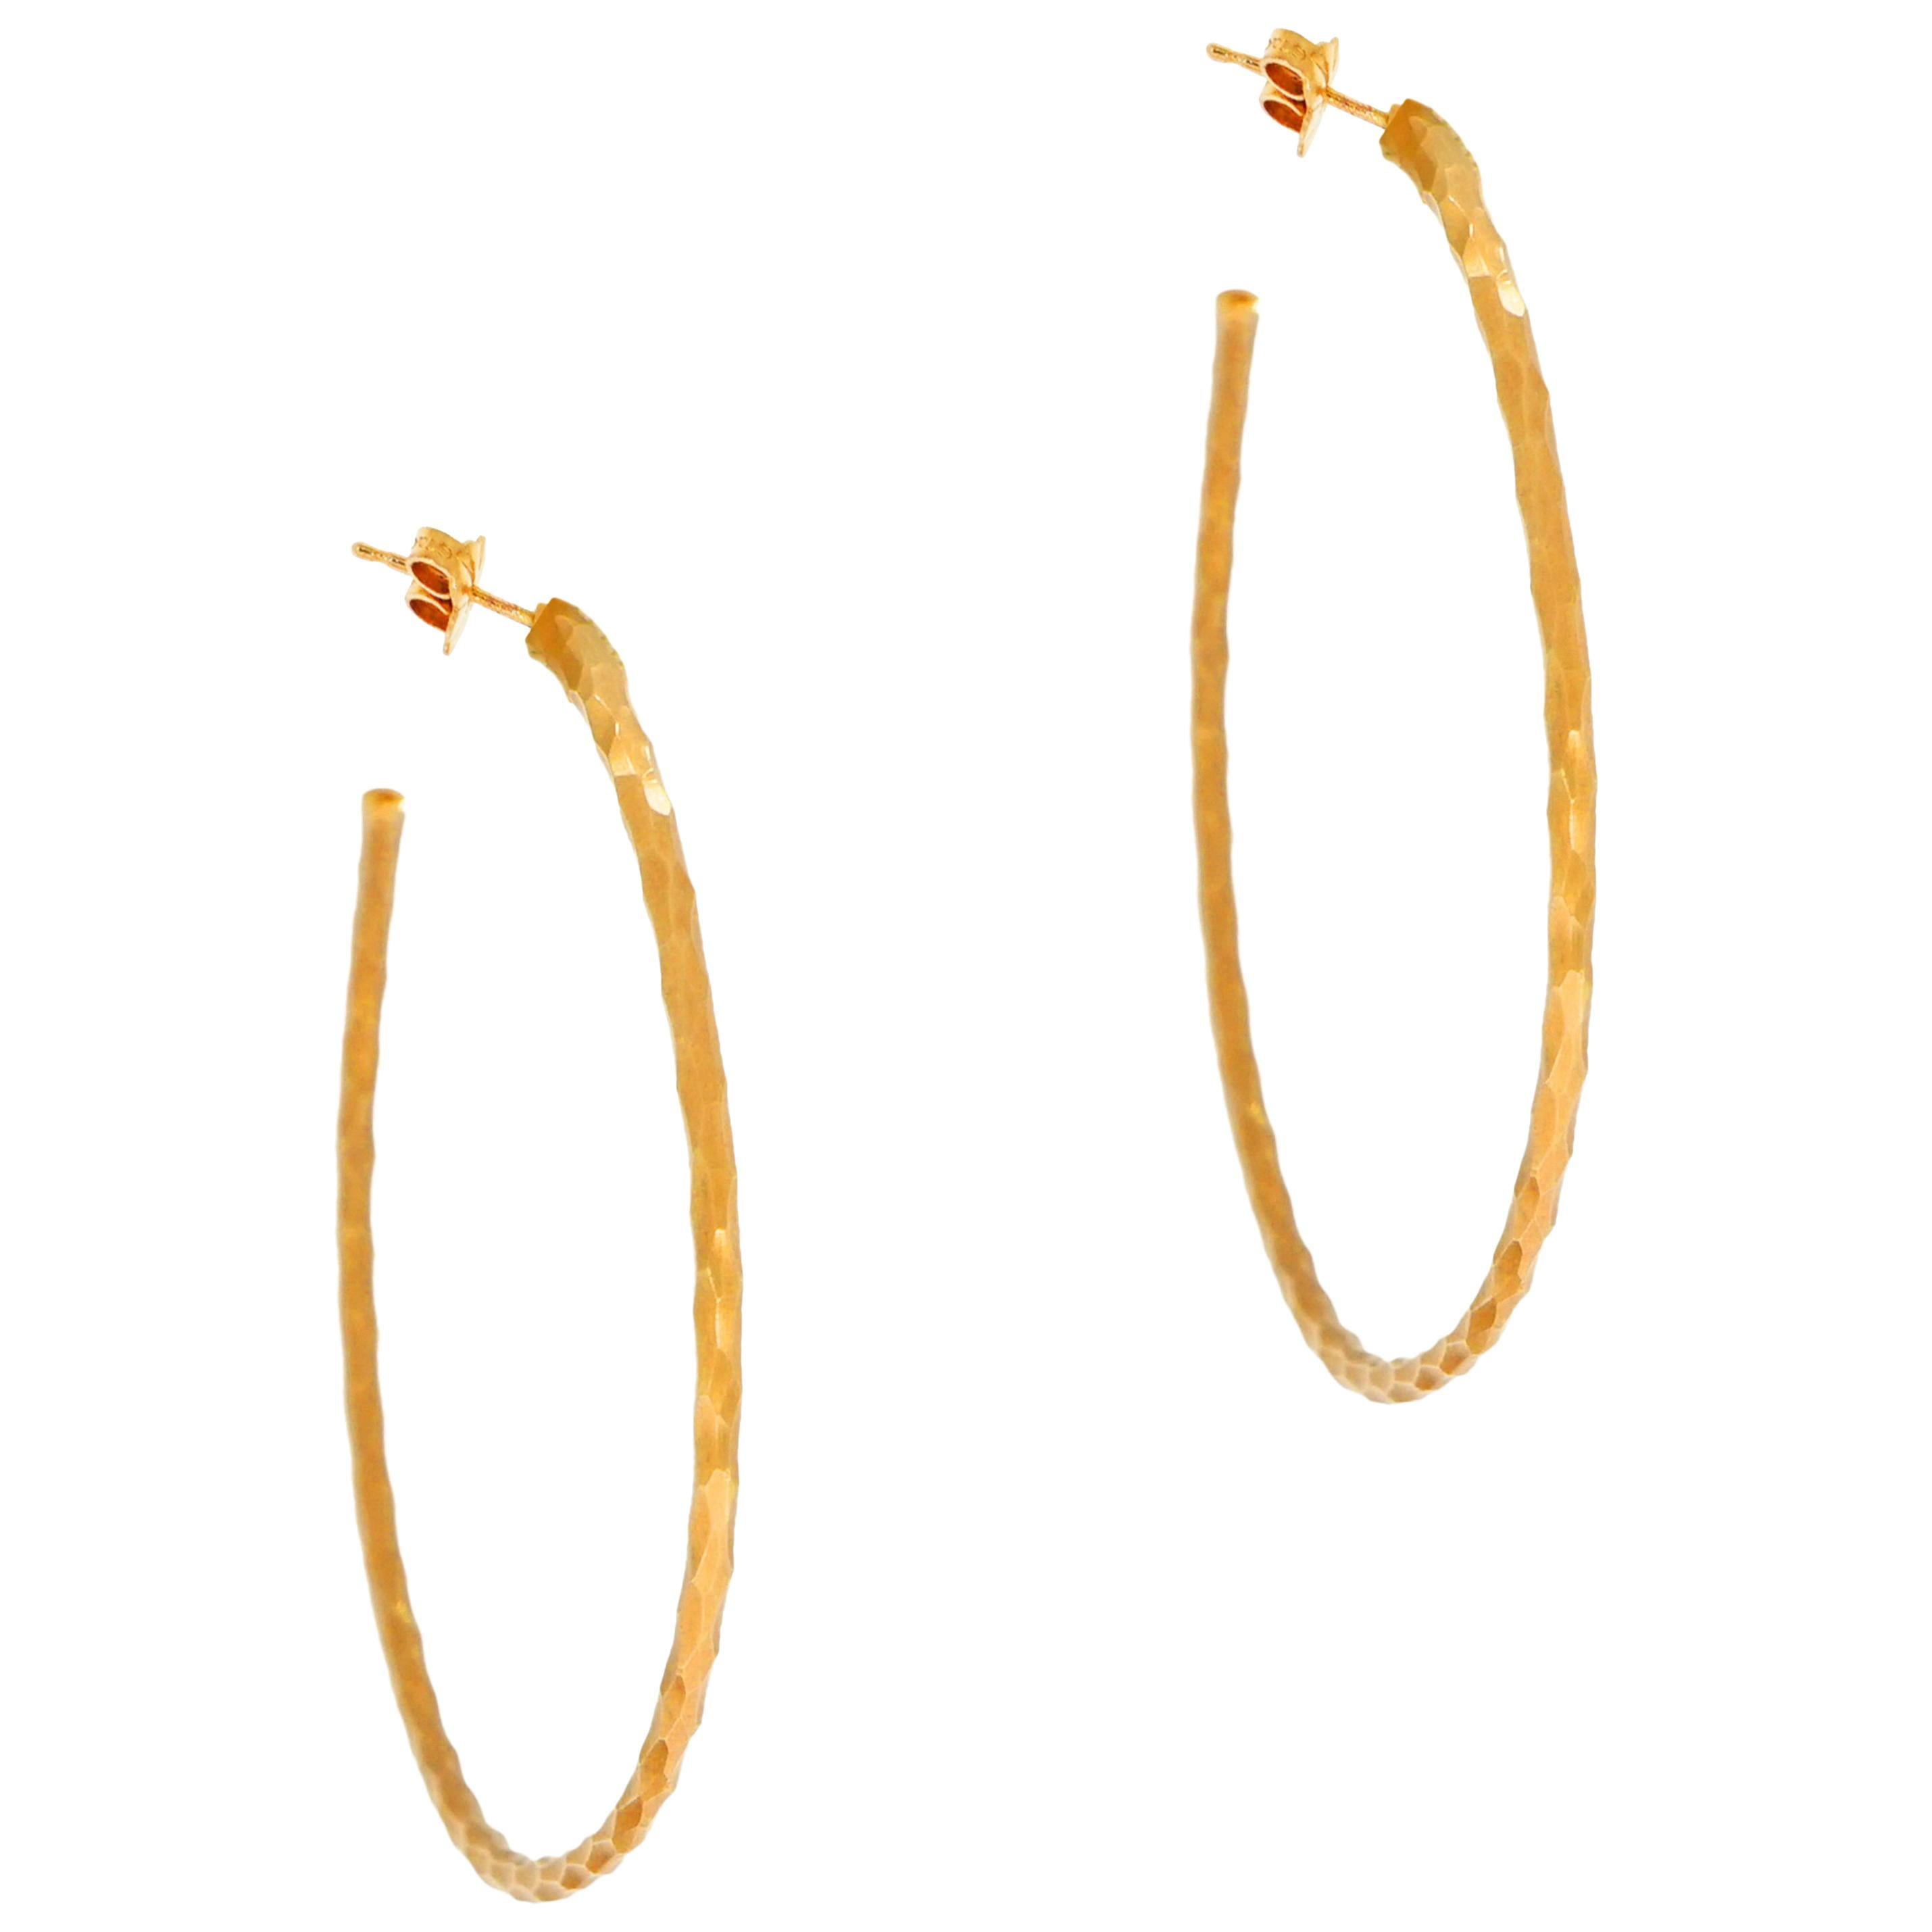 29cd8d4b0 Tiffany & Co. Hoop Earrings - 48 For Sale at 1stdibs